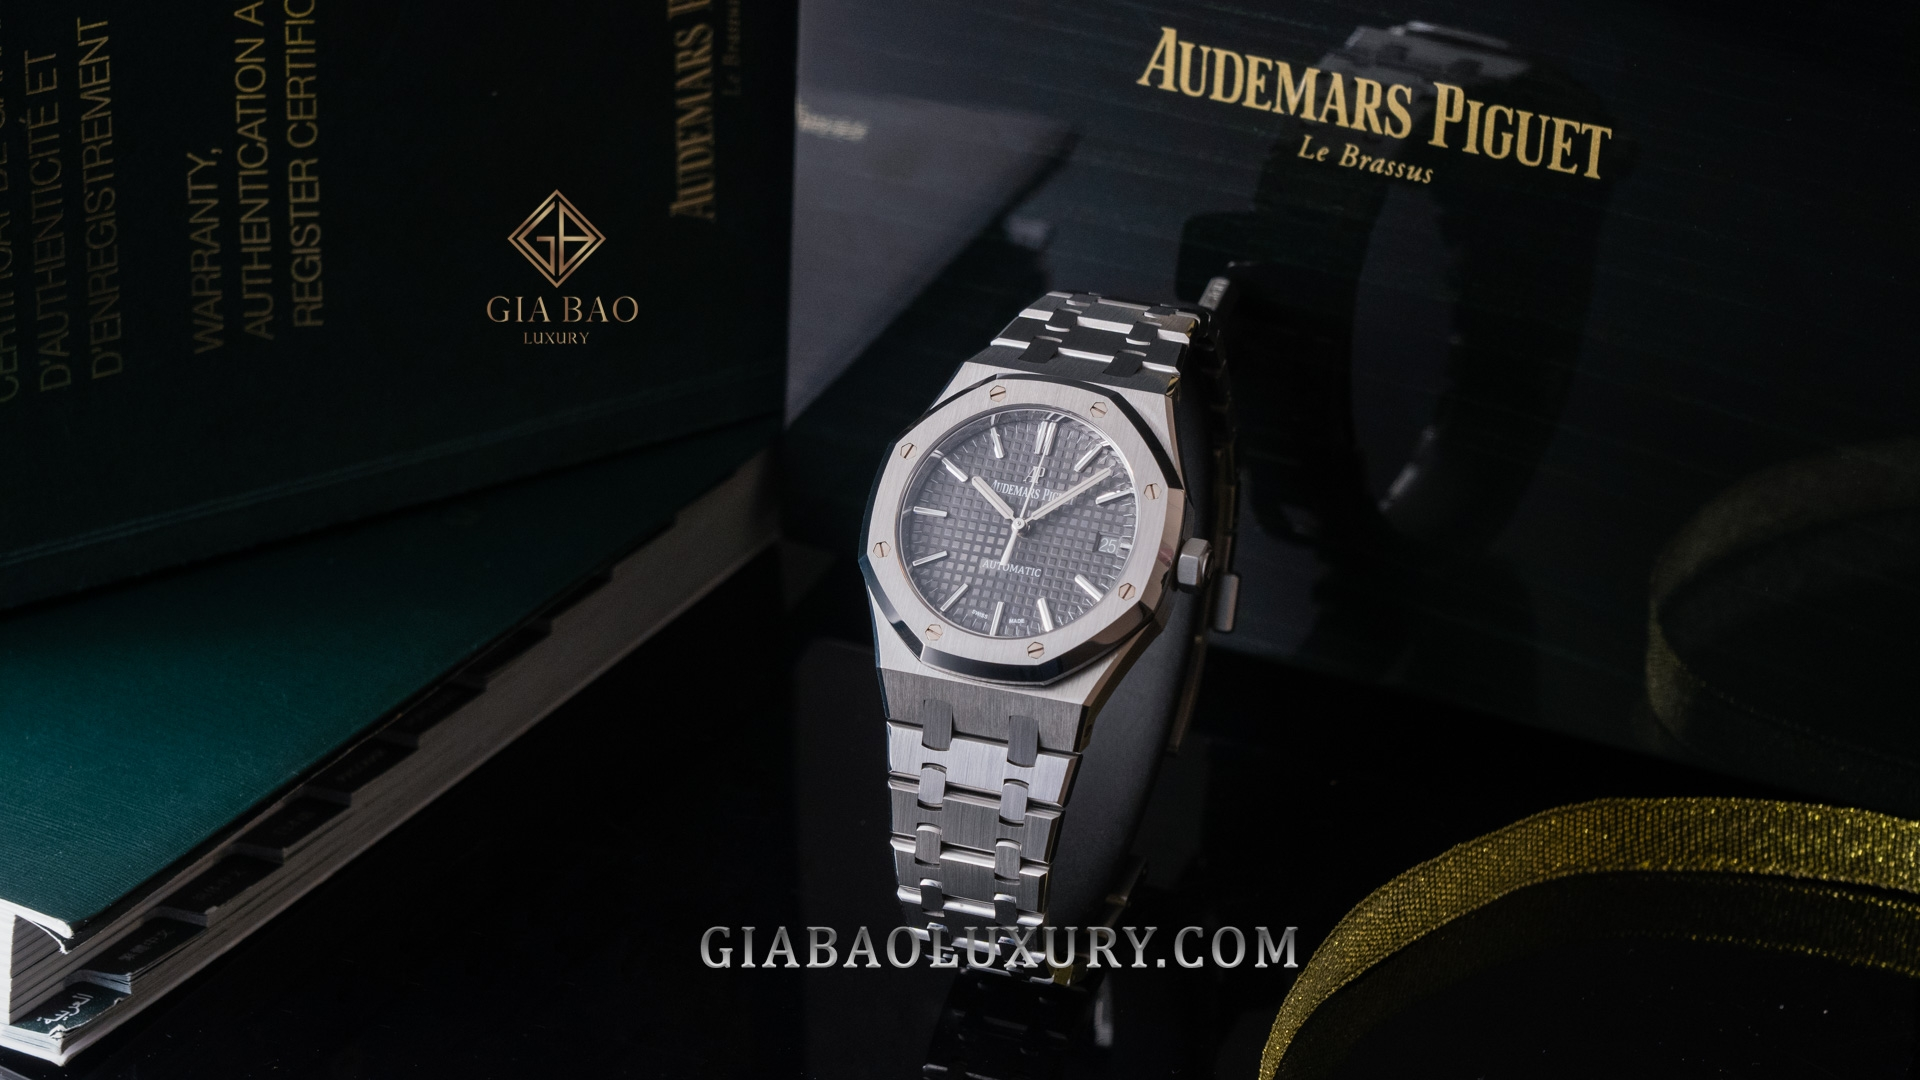 Đồng Hồ Audemars Piguet Royal Oak Grey 15450ST.OO.1256ST.02